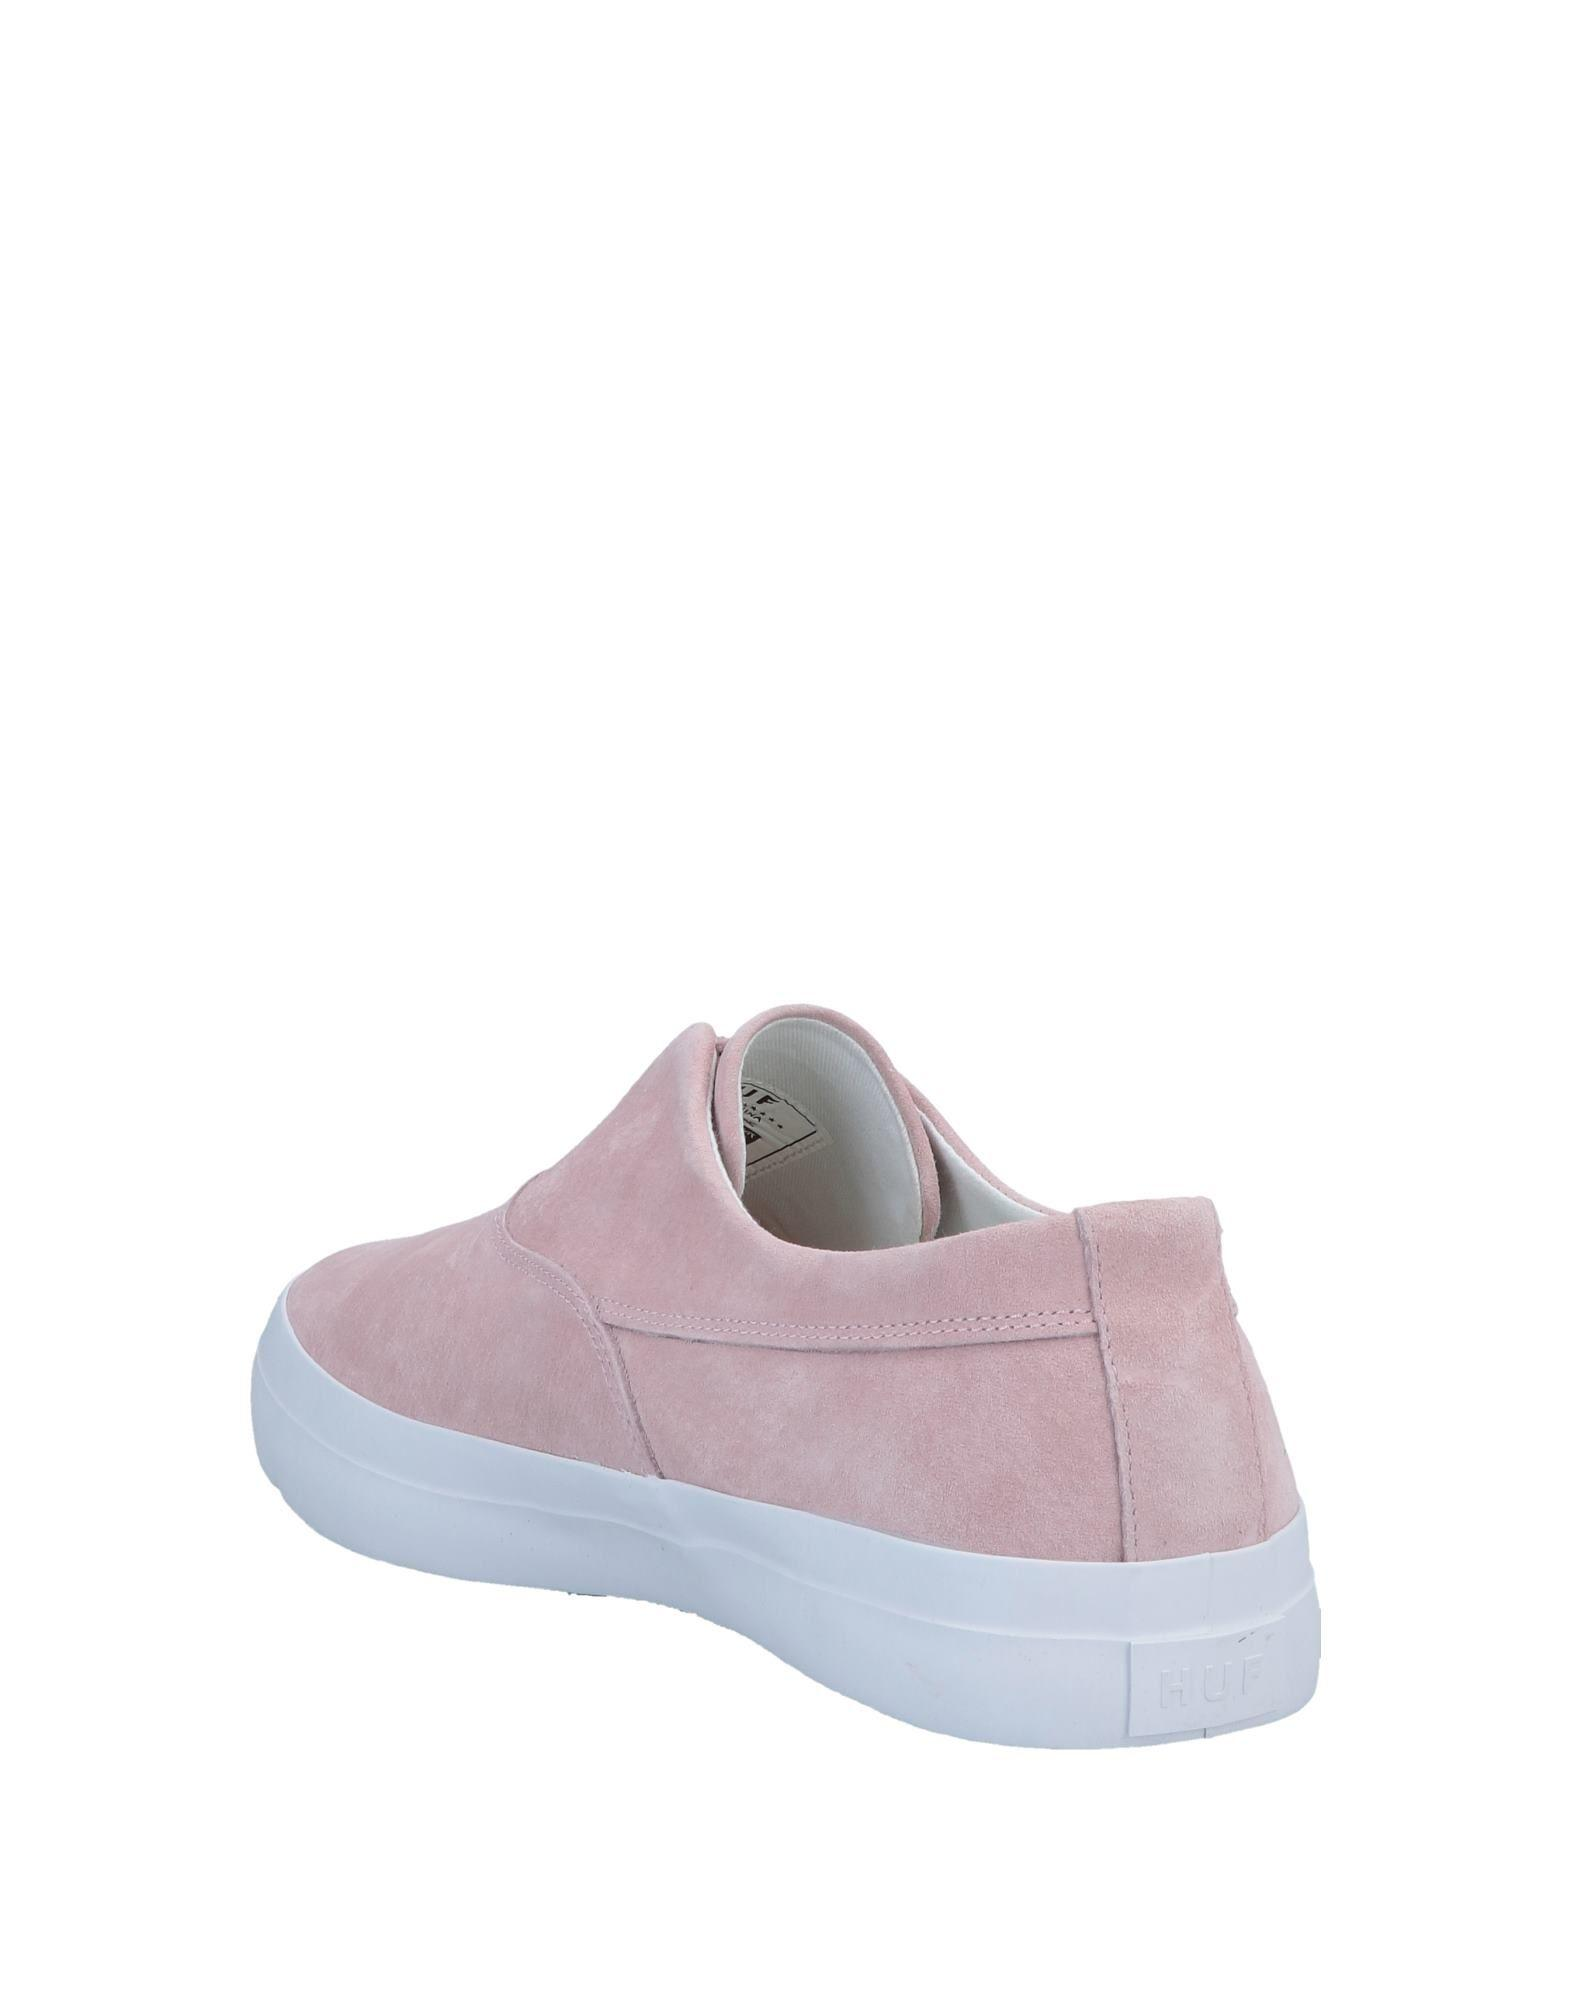 0a1a93fc1a204 Lyst - Huf Low-tops & Sneakers in Pink for Men